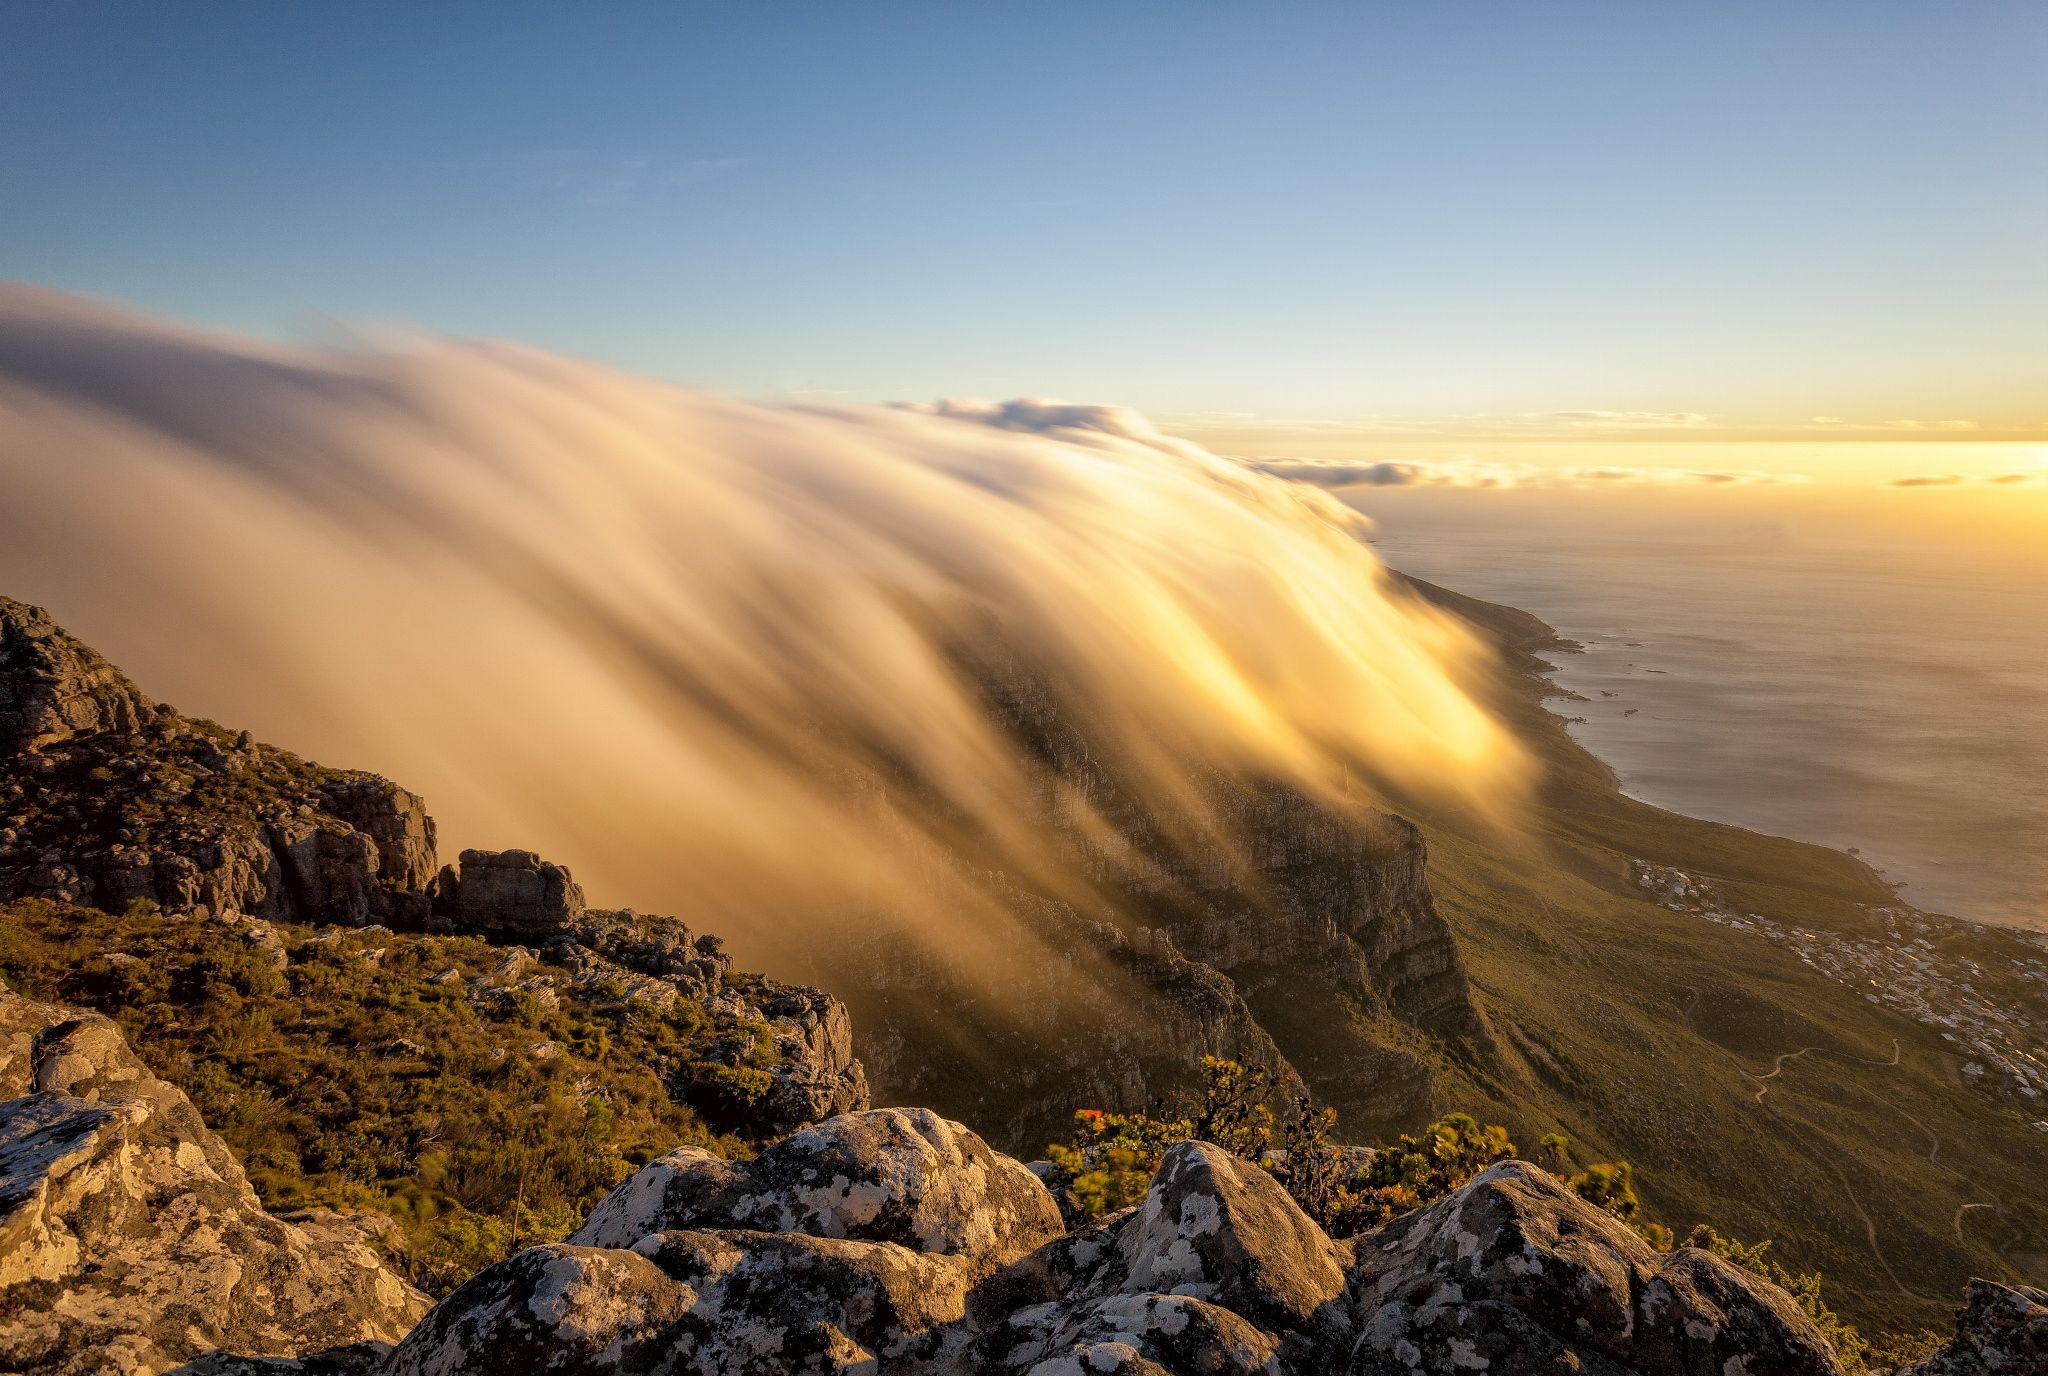 Golden Cloud River by PJ van Schalkwyk on 500px